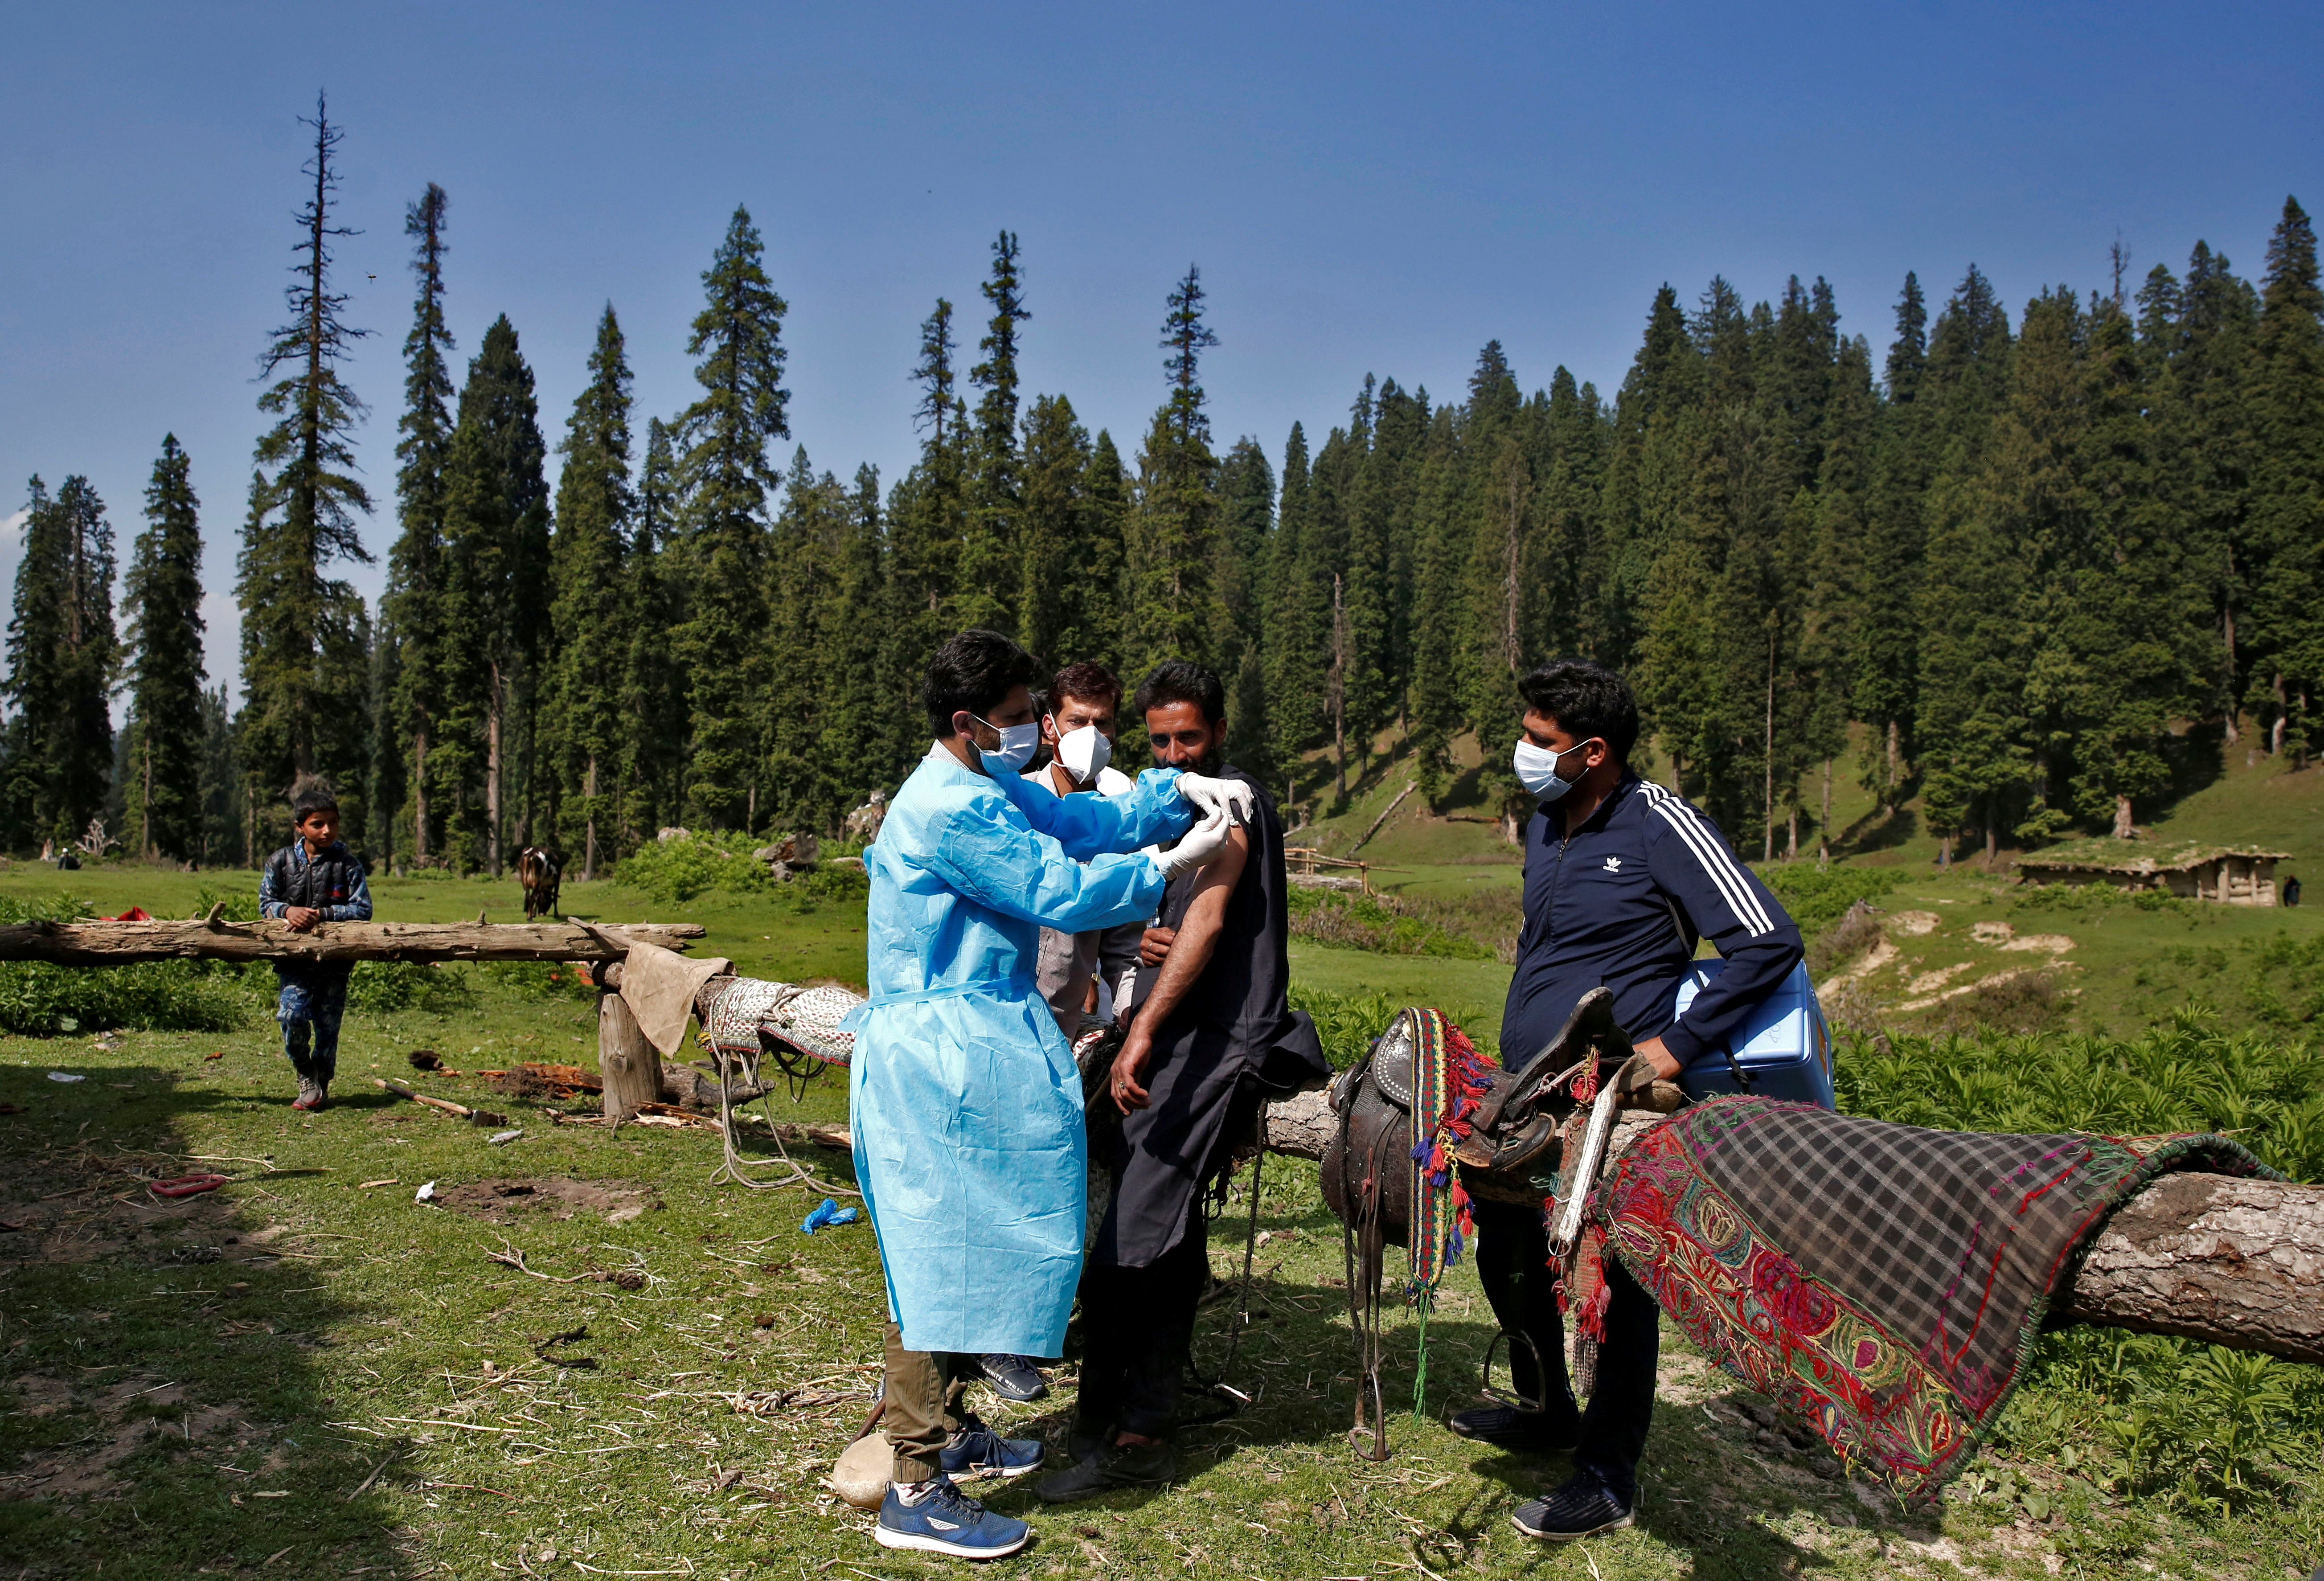 A healthcare worker gives a dose of COVISHIELD, a coronavirus disease (COVID-19) vaccine manufactured by Serum Institute of India, to a shepherd man during a vaccination drive at a forest area in south Kashmir's Pulwama district June 7, 2021. REUTERS/Danish Ismail/File Photo